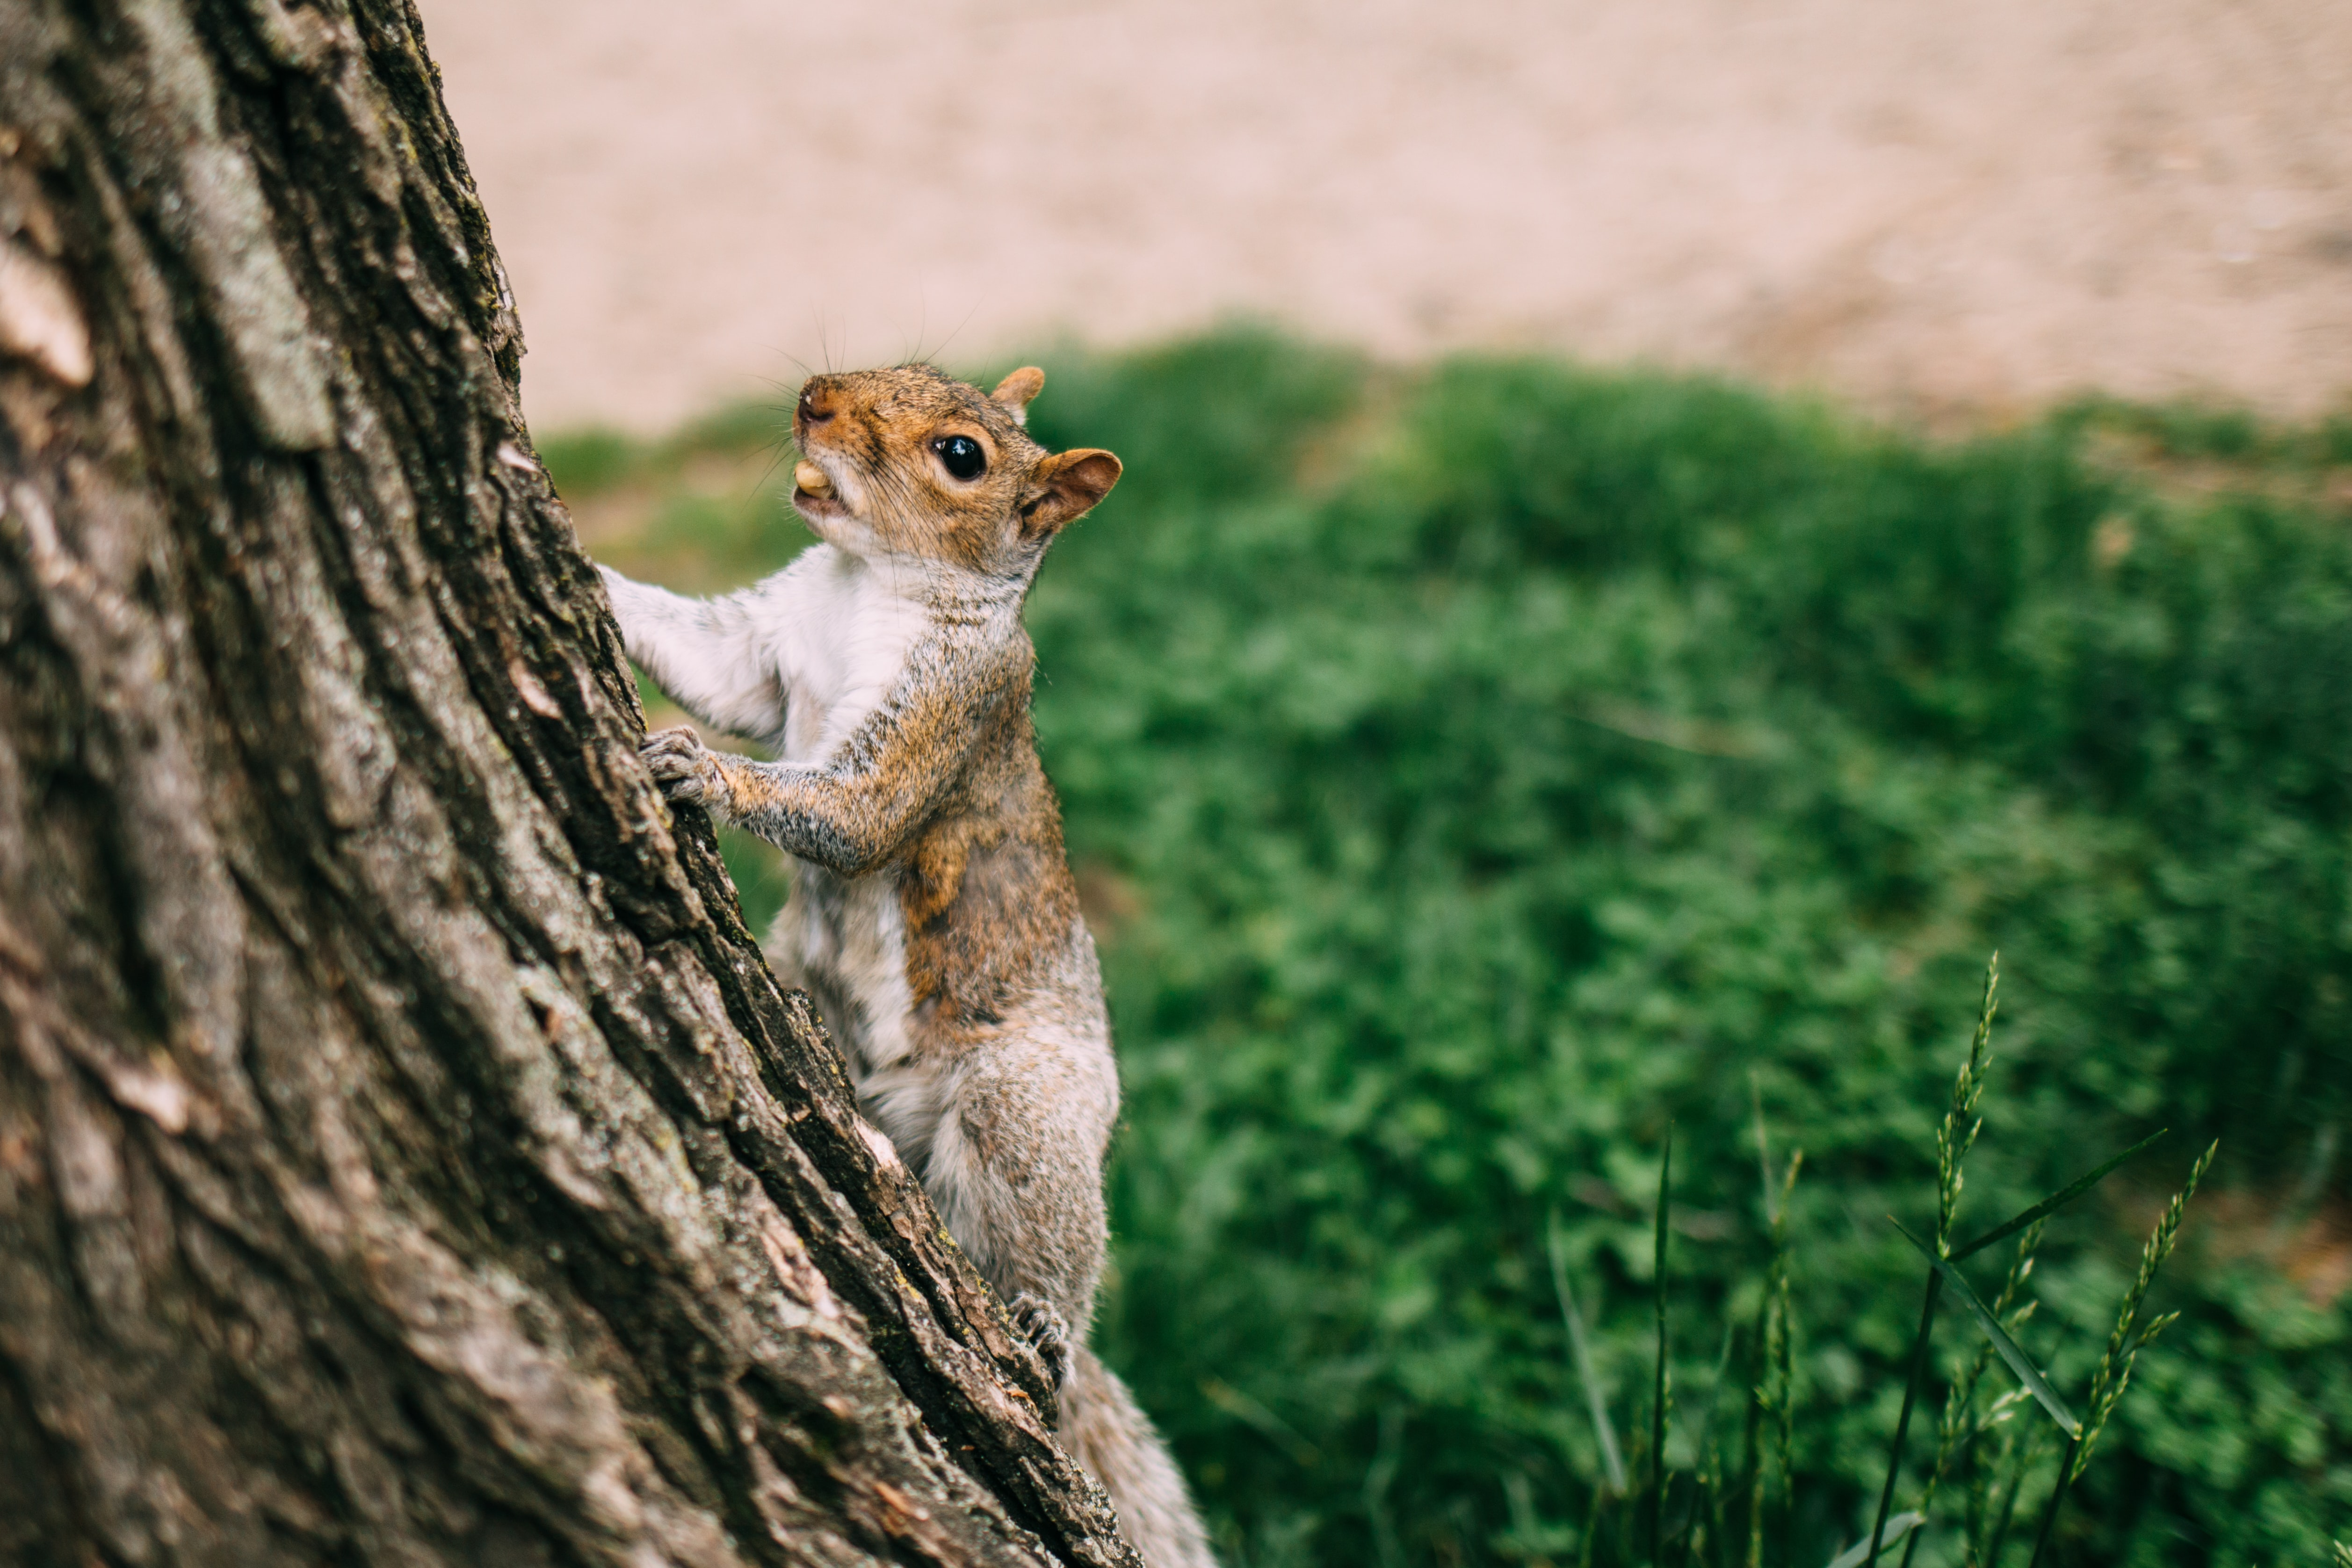 brown and white squirrel climbing on tree